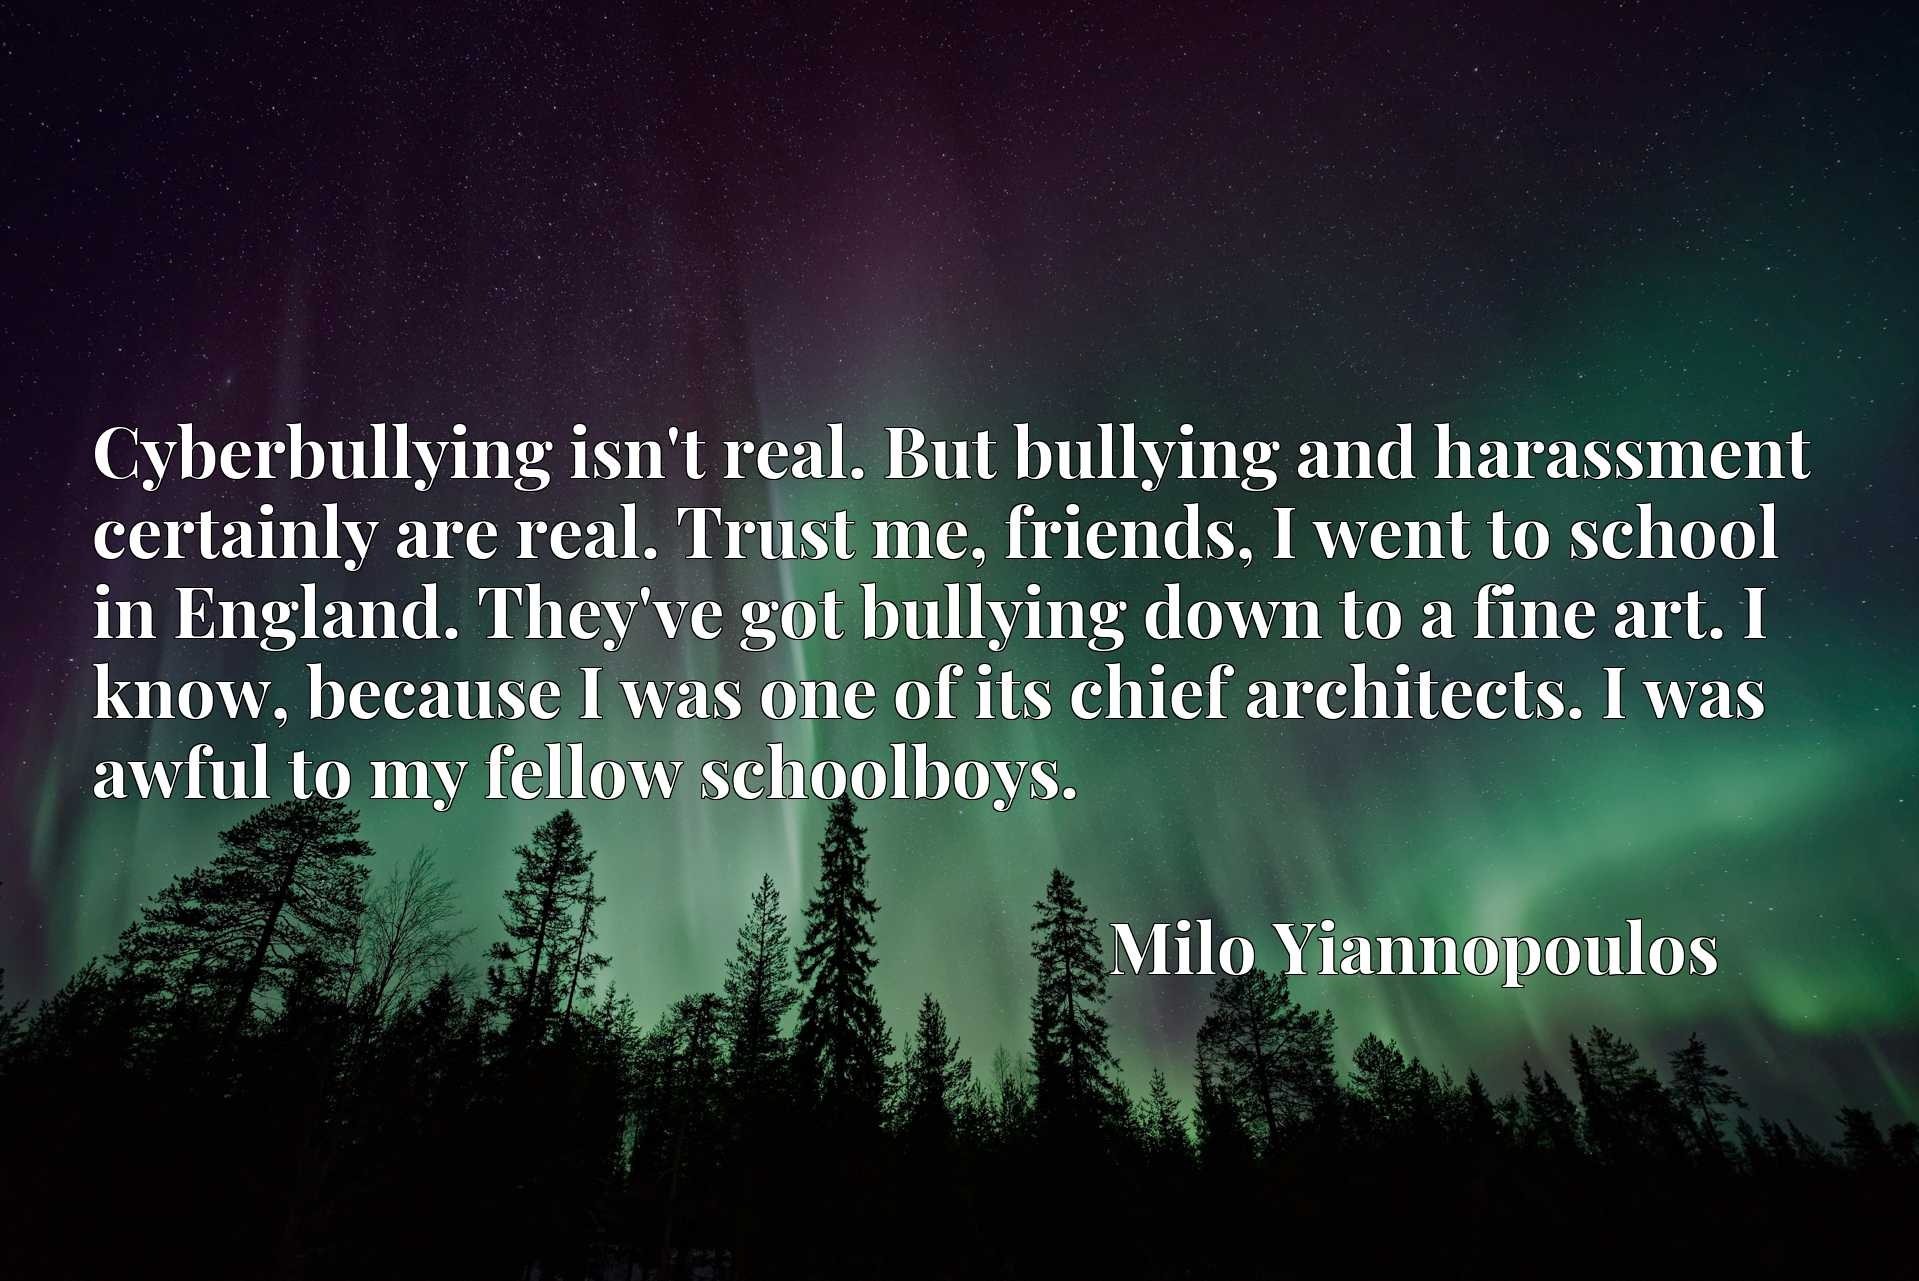 Cyberbullying isn't real. But bullying and harassment certainly are real. Trust me, friends, I went to school in England. They've got bullying down to a fine art. I know, because I was one of its chief architects. I was awful to my fellow schoolboys.